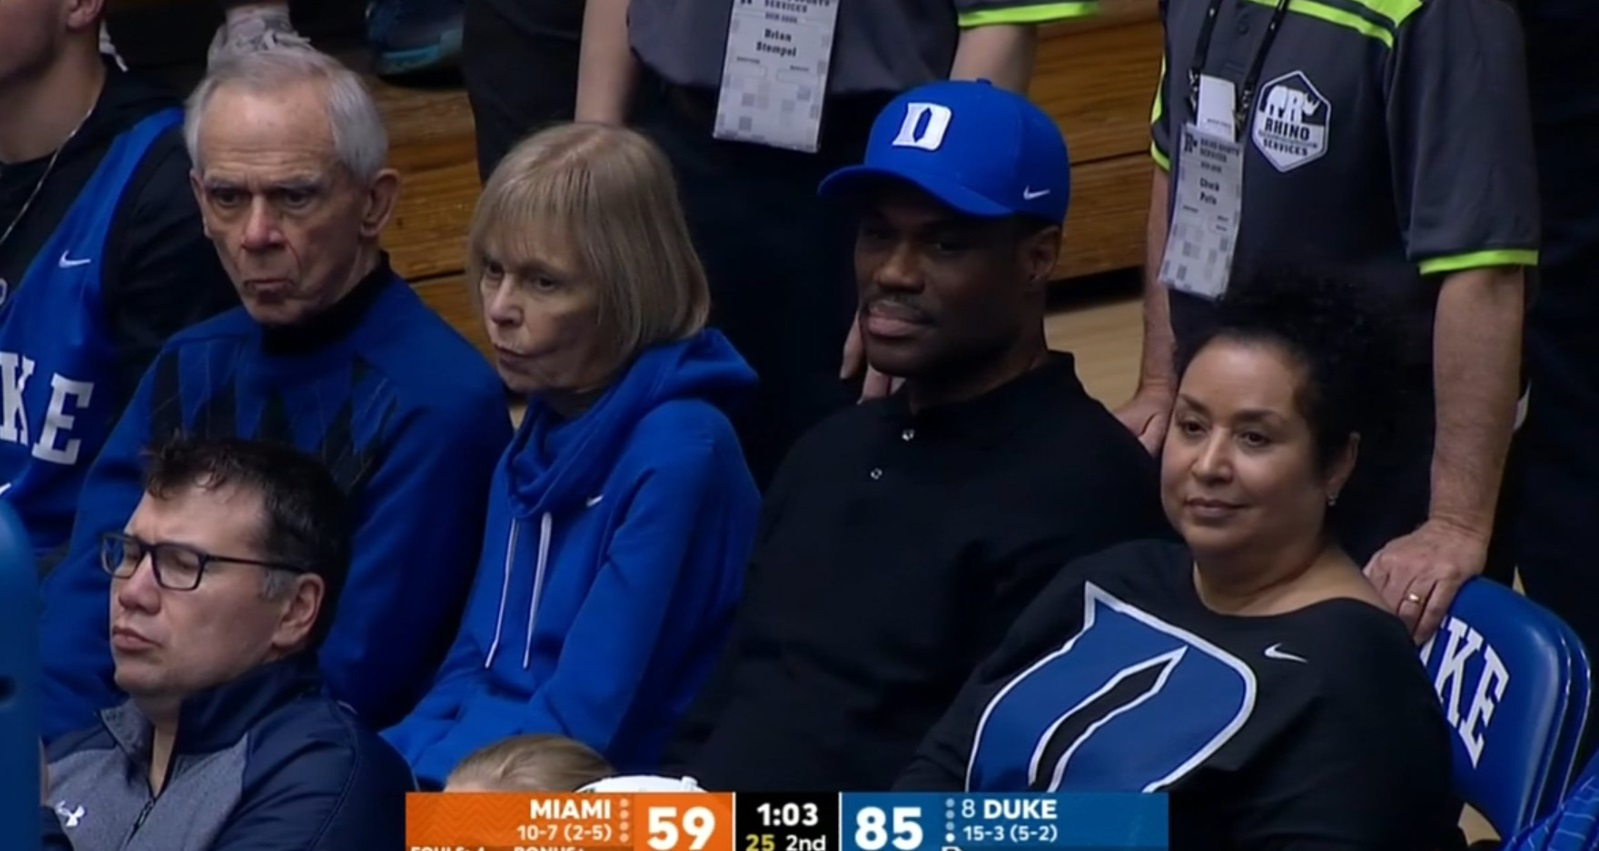 PHOTO David Robinson In Duke Hat At Miami Duke Game